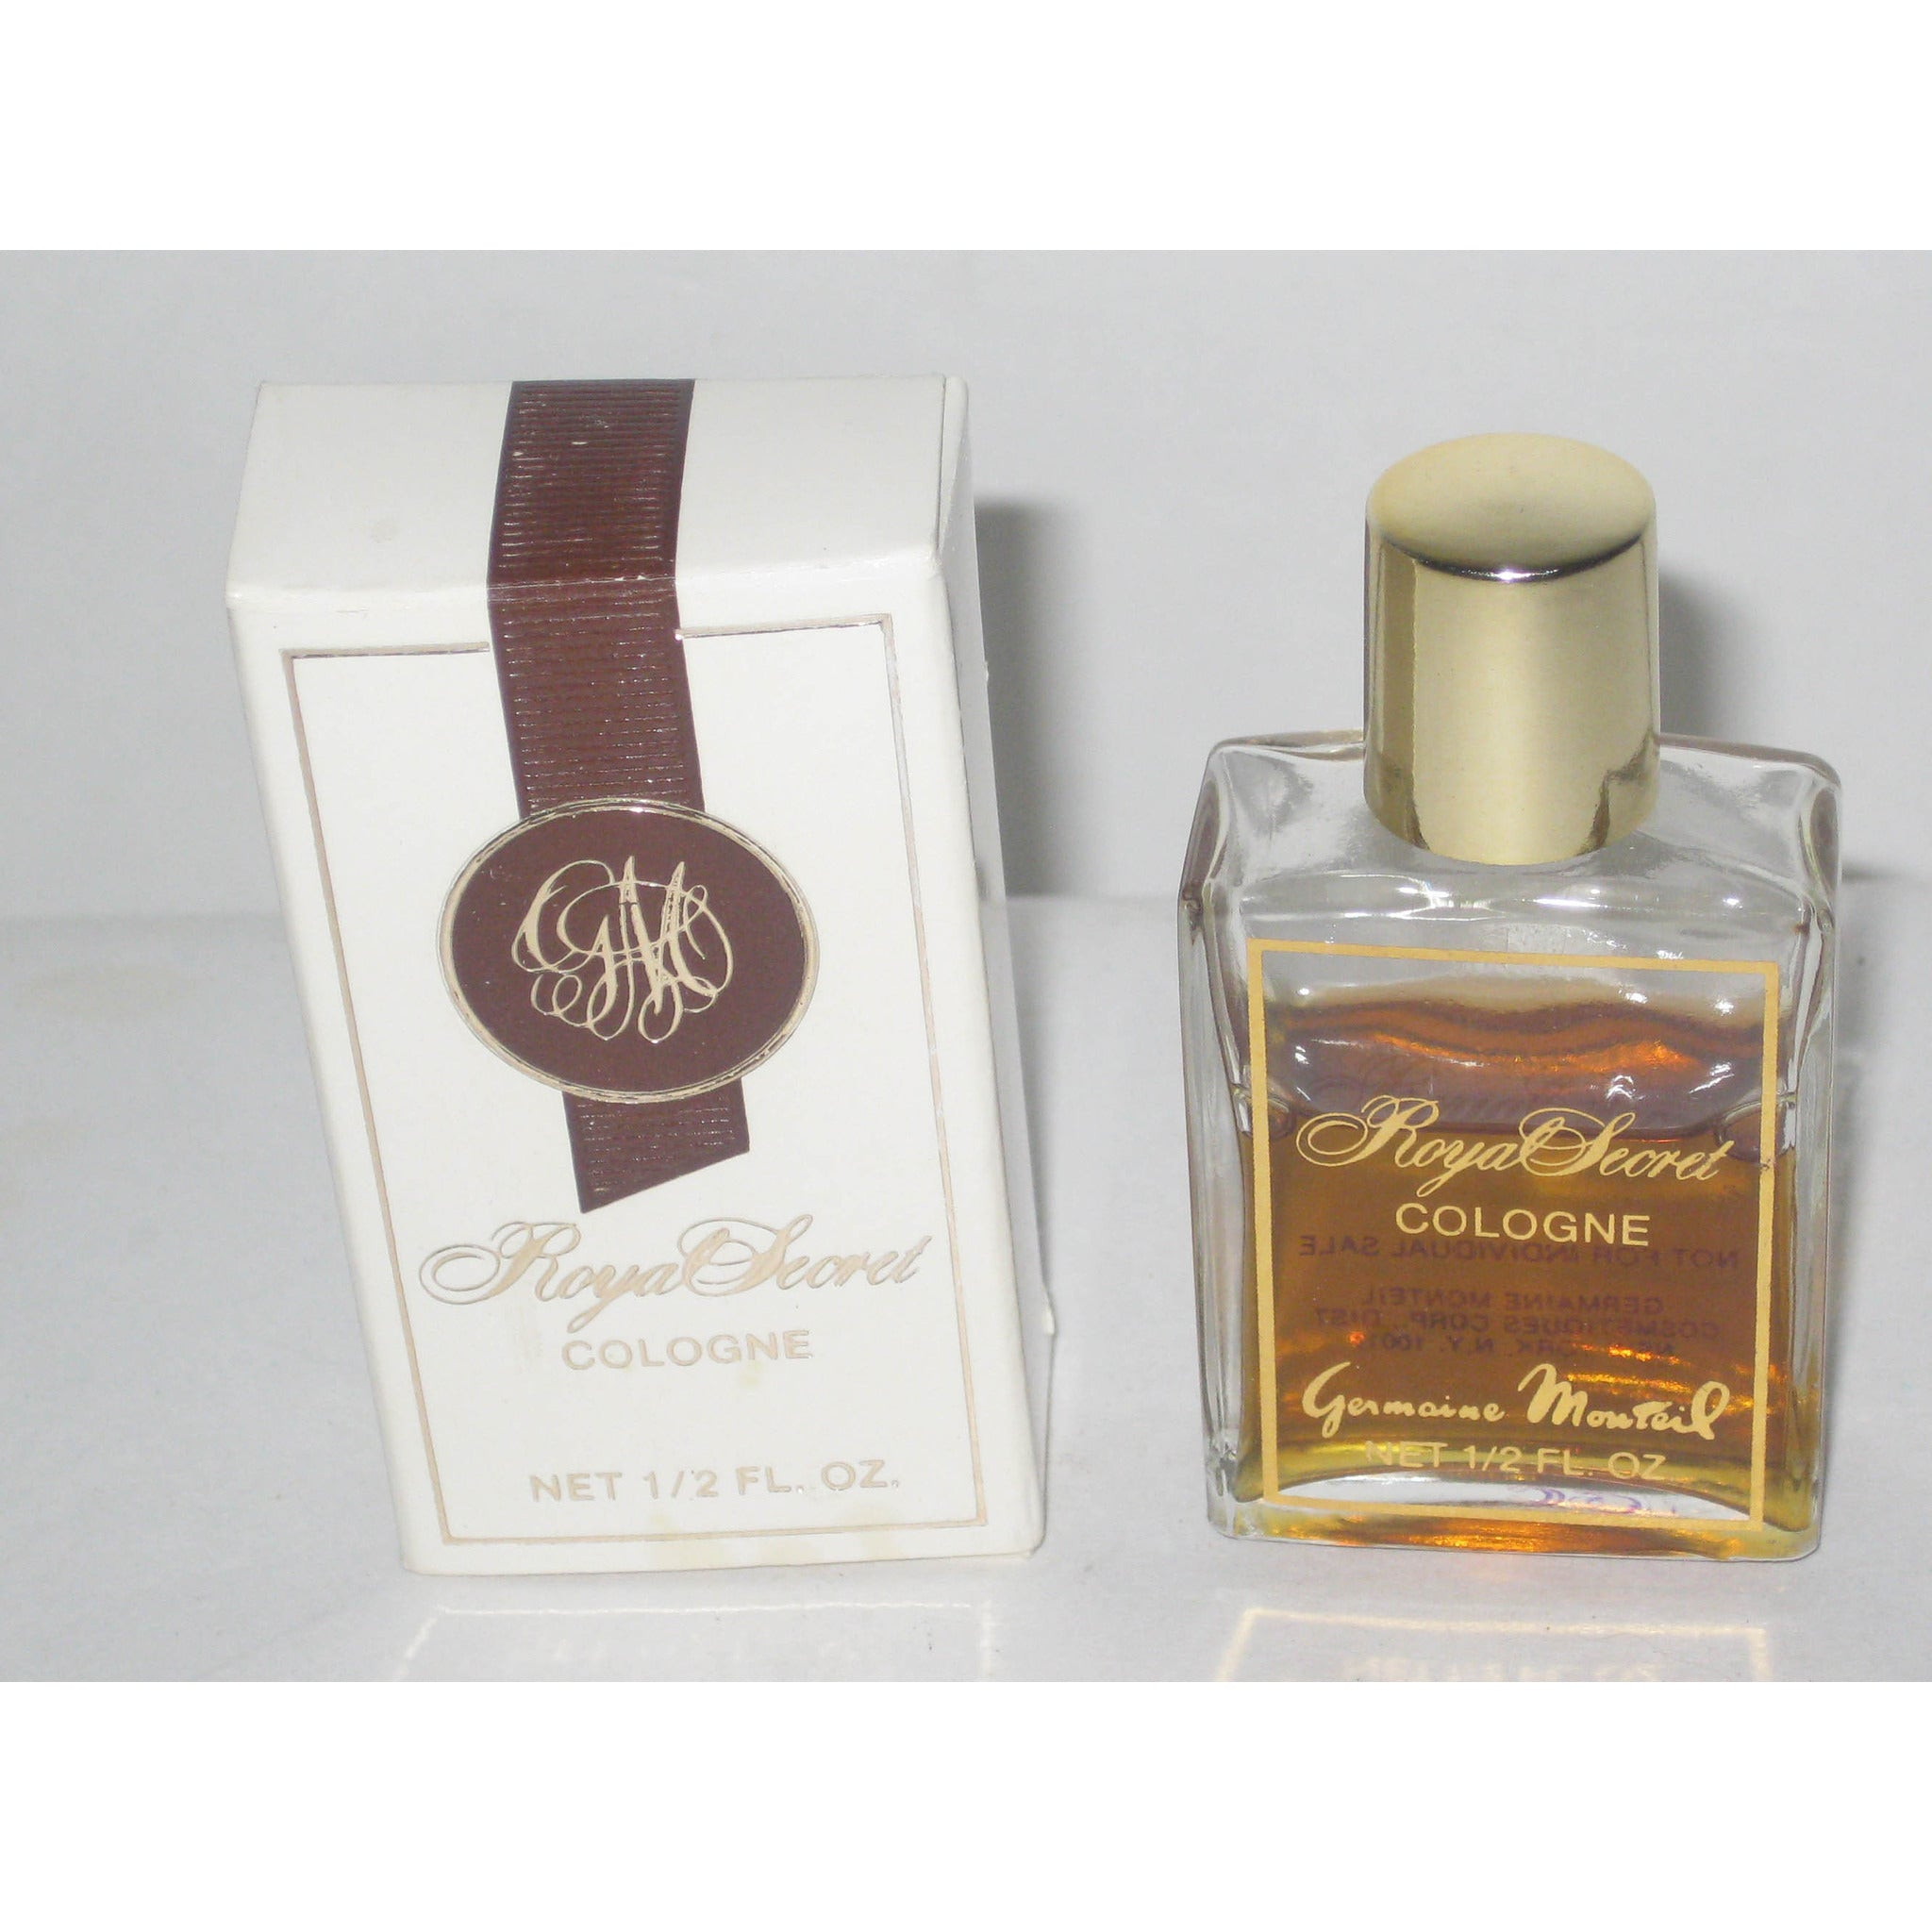 Vintage Germaine Monteil Royal Secret Cologne